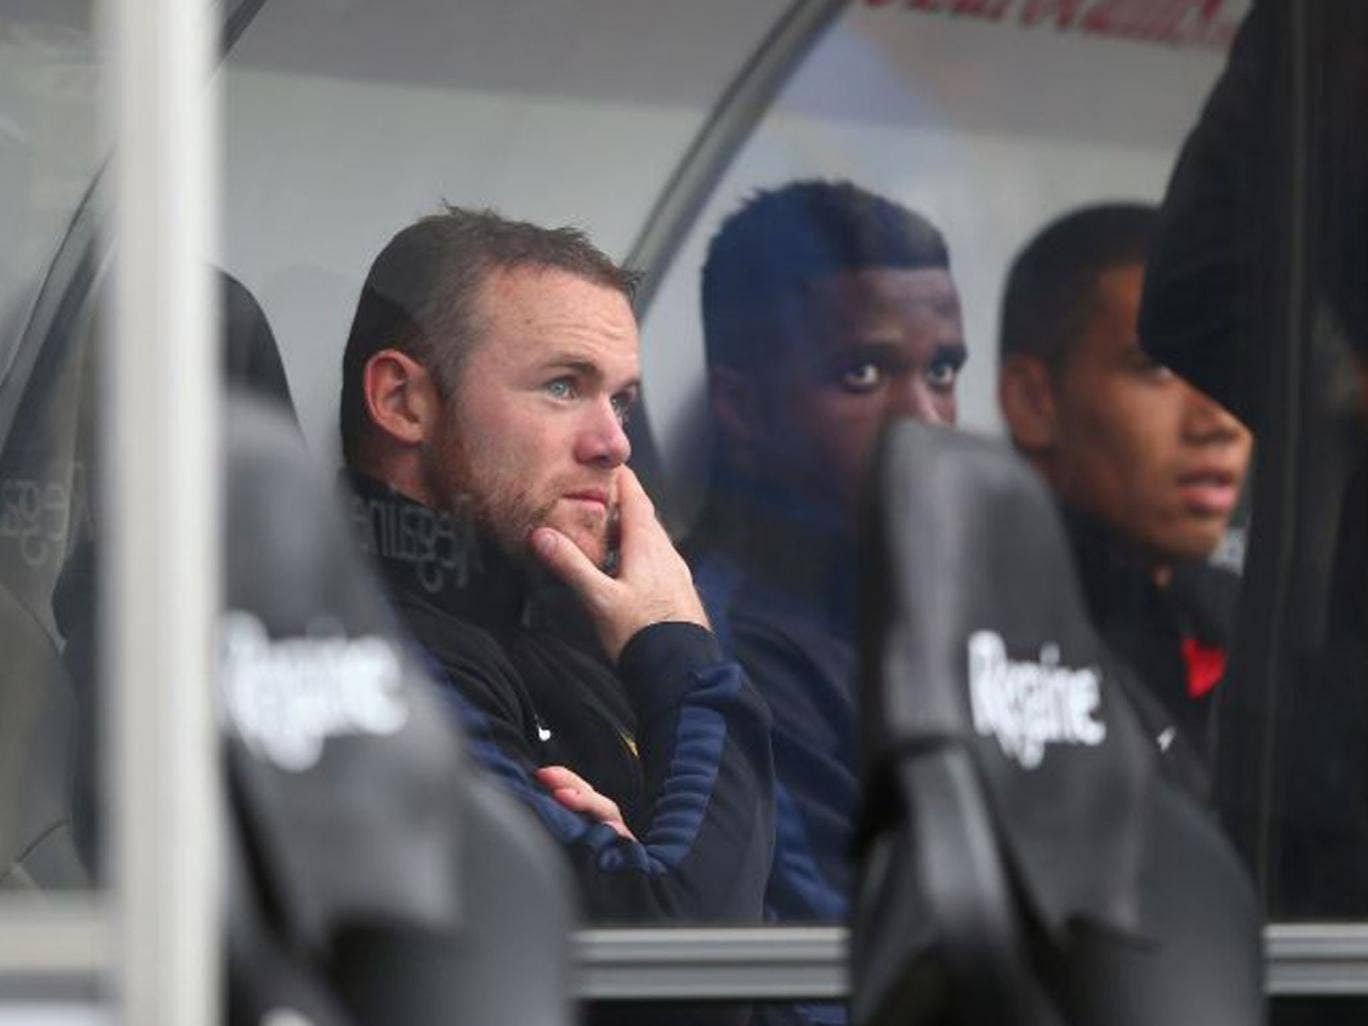 Wayne Rooney came off the bench to assist Manchester United's third and four goals - although his body language did not suggest contentment (Michael Steele/Getty Images)